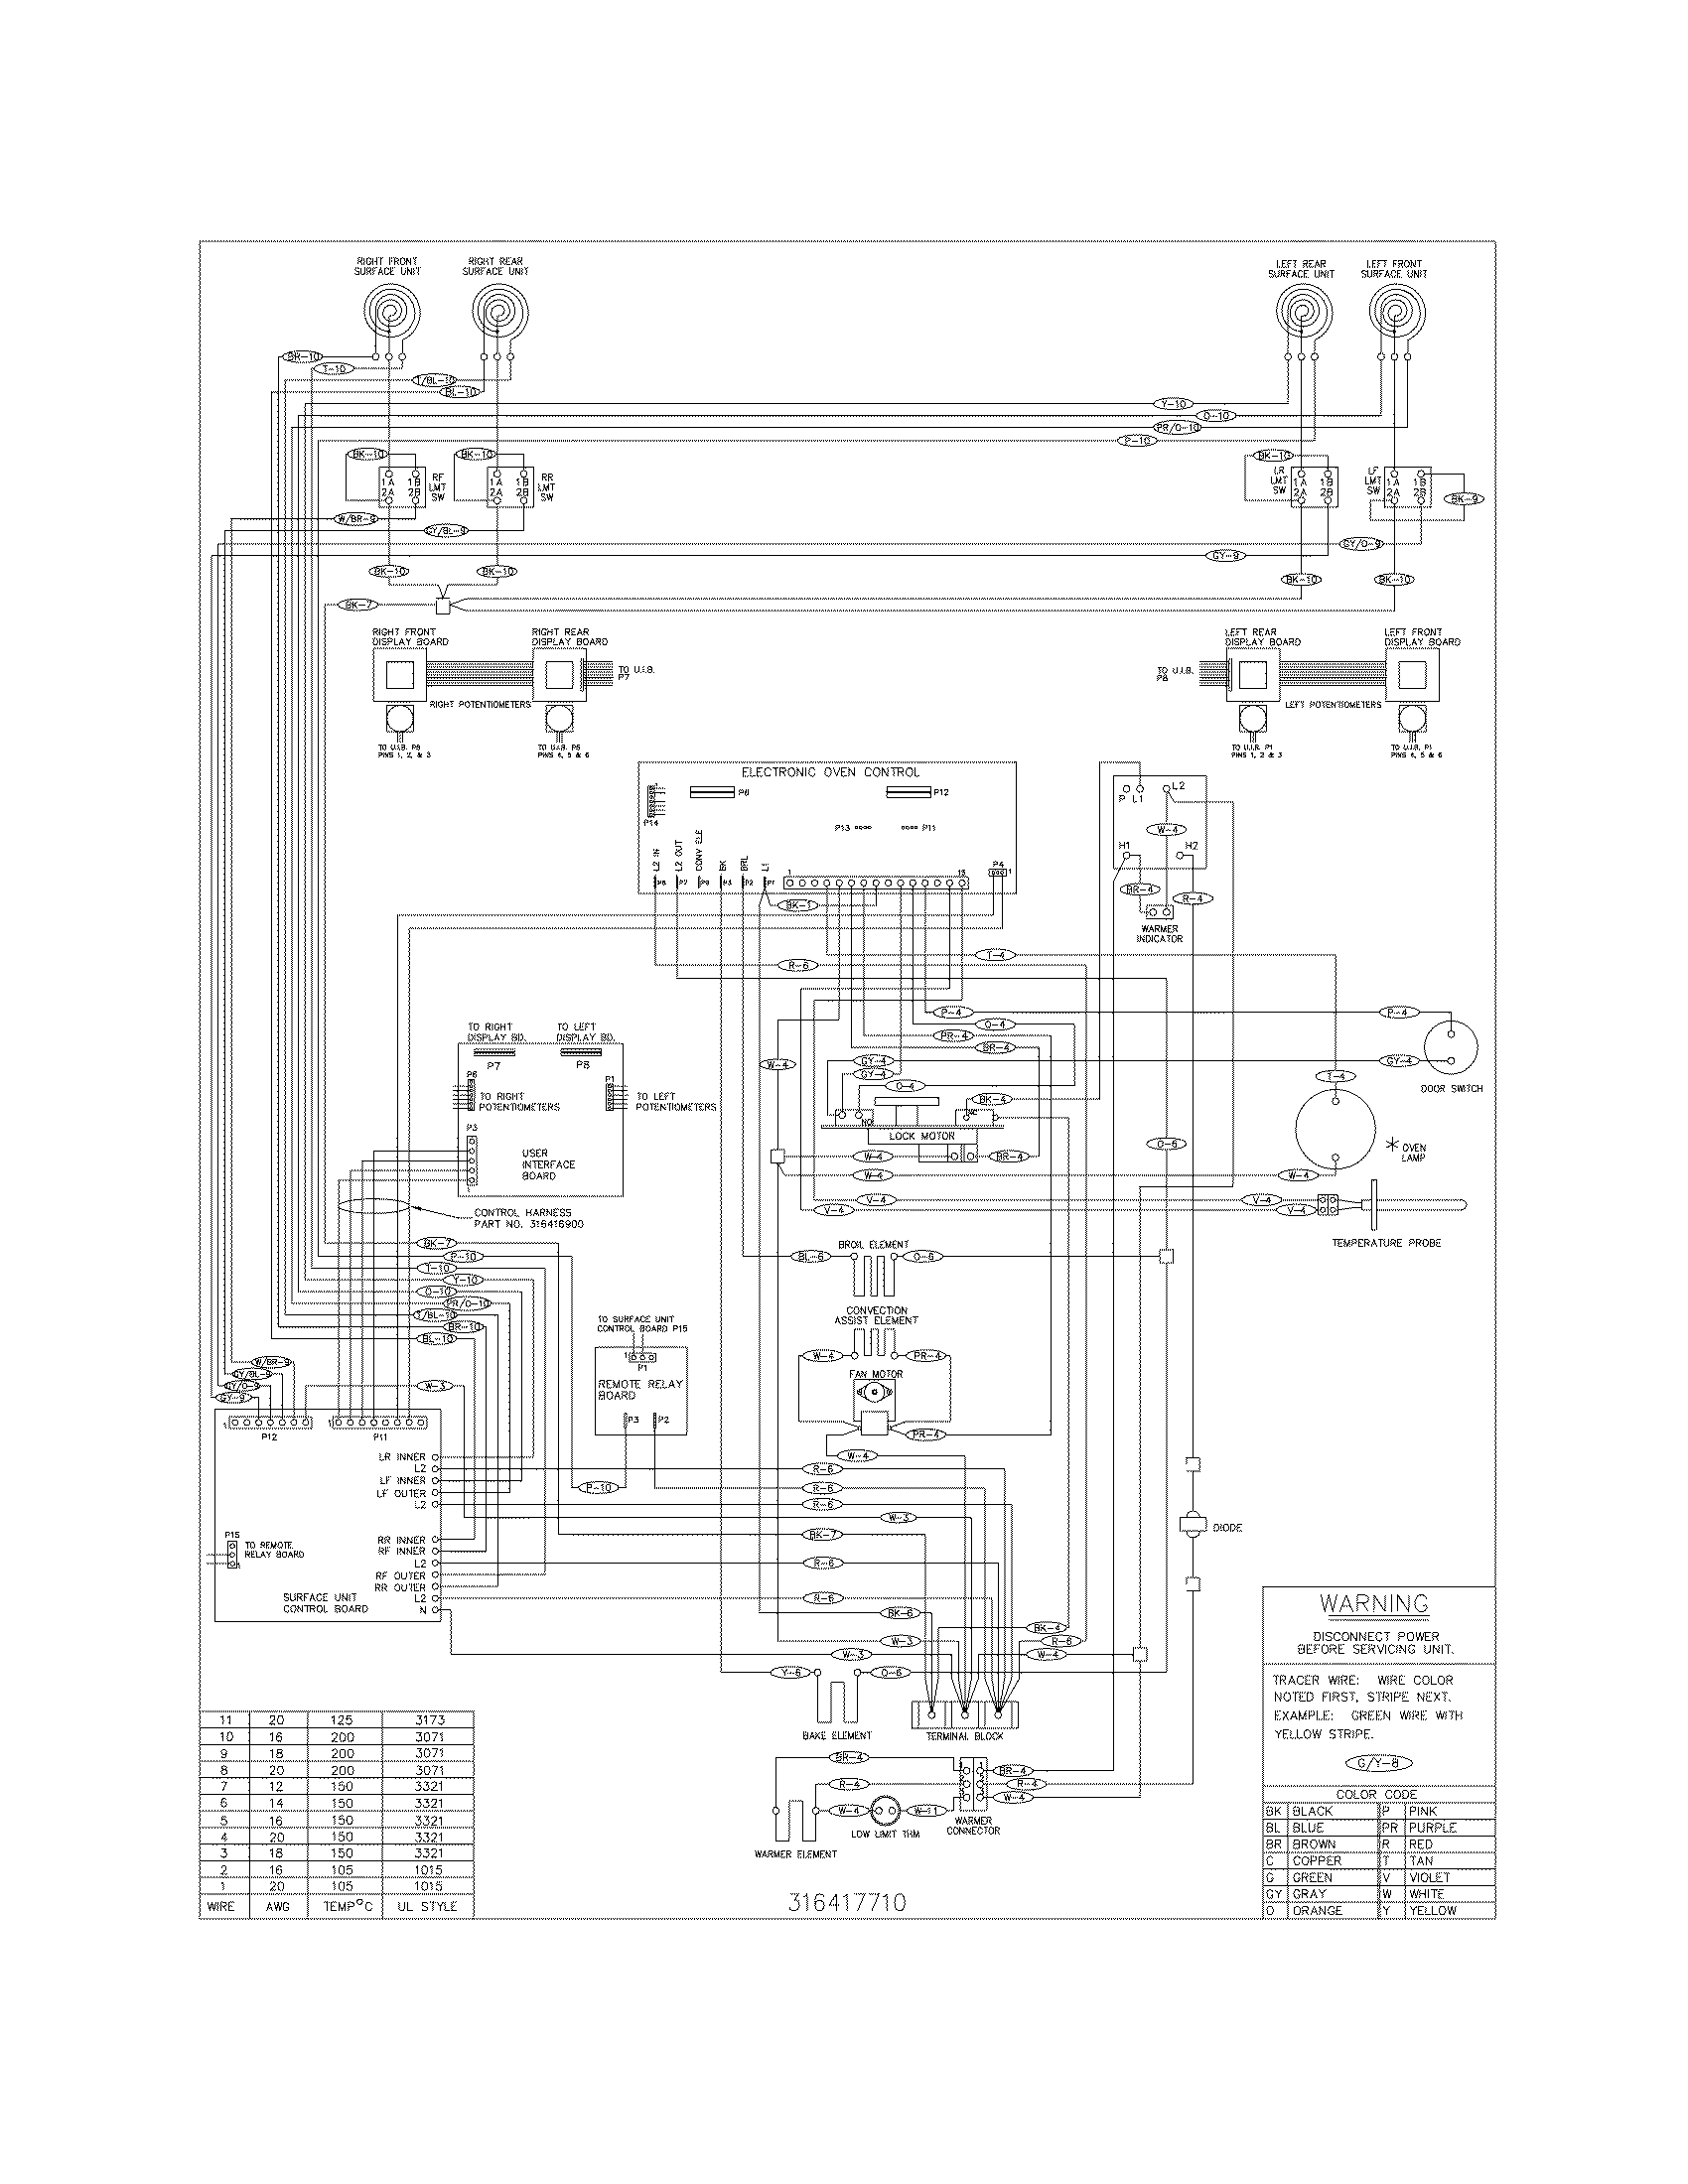 3 phase 4 wire kwh meter wiring diagram images phase current electricmeterwiringdiagram electric meter wiring diagram